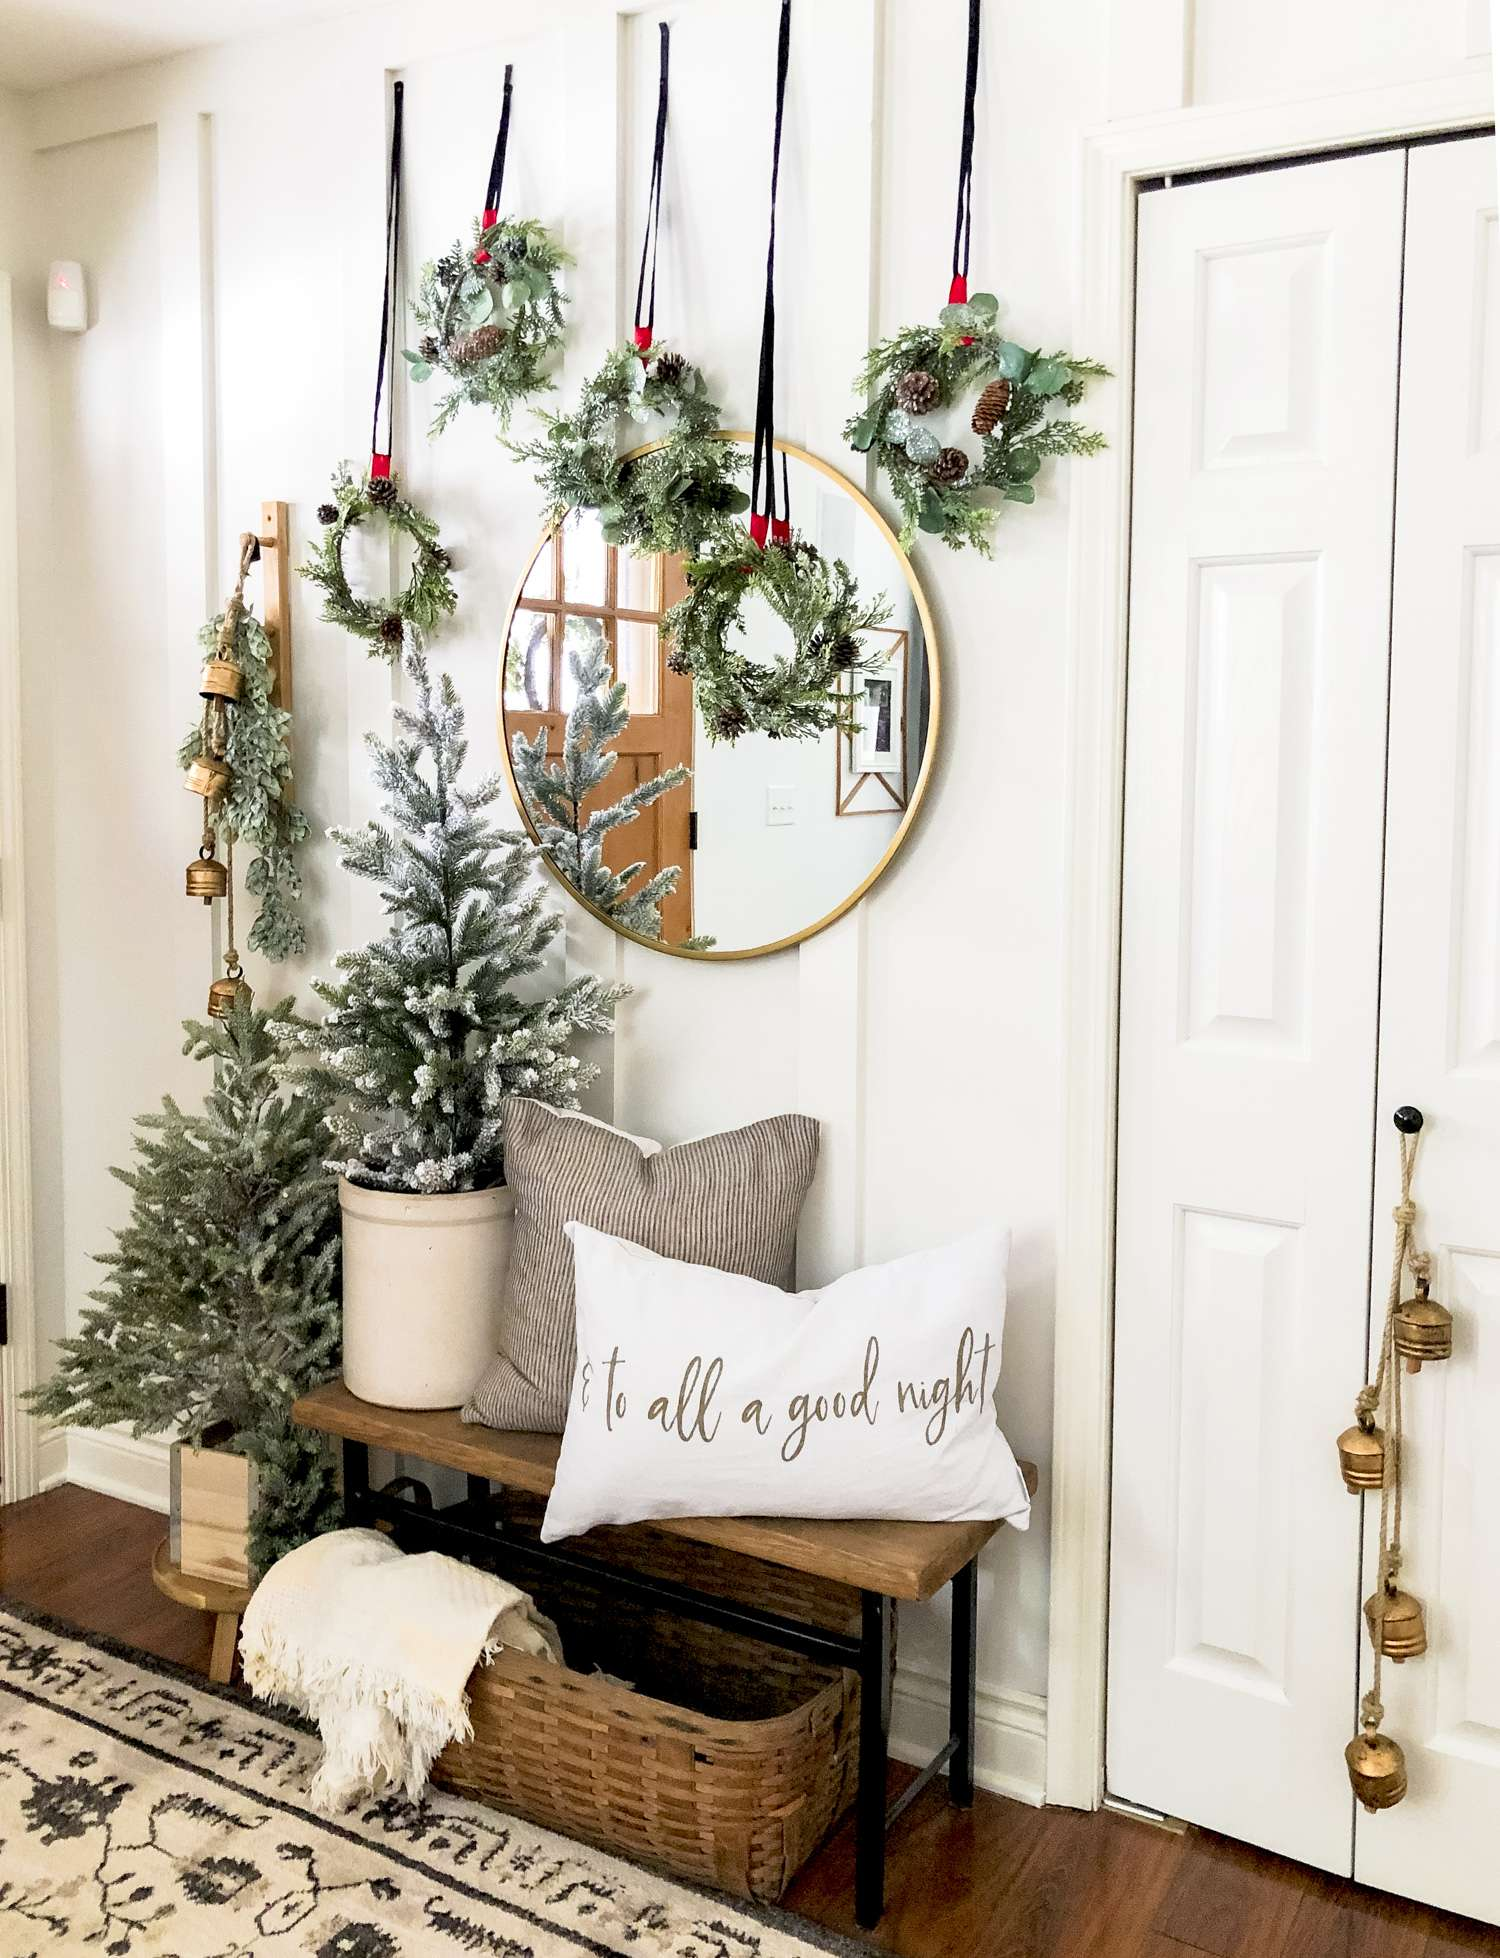 Christmas Decor in the Entryway.